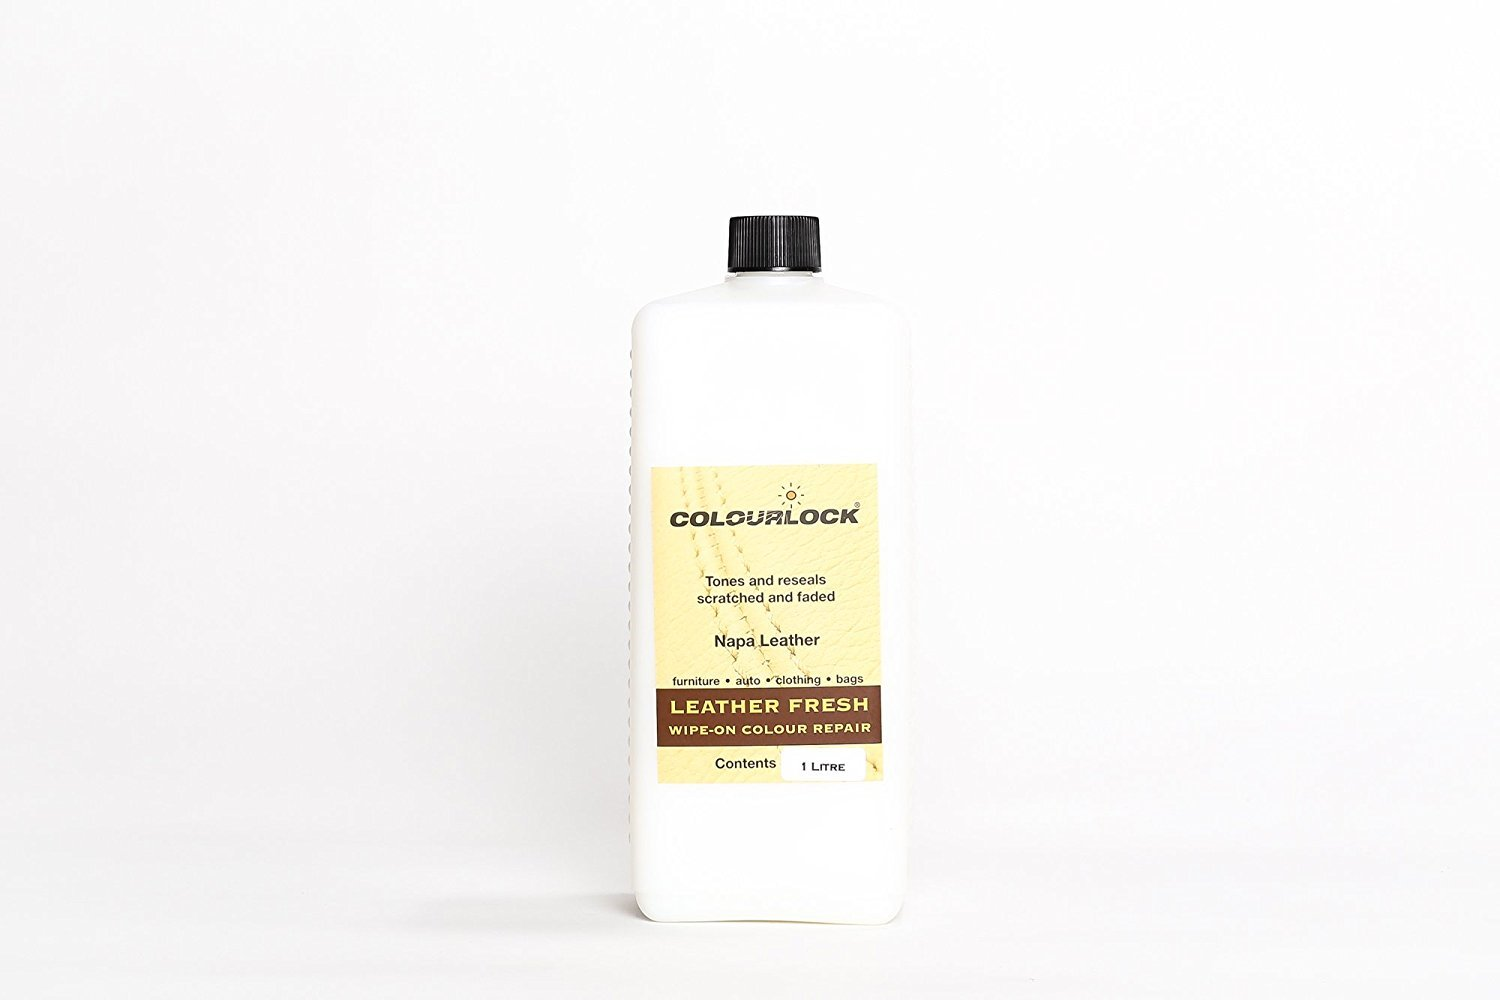 COLOURLOCK Leather Fresh dye is a DIY Repair Color, dye, restorer for scuffs, small cracks on car seats, sofas, bags, settees and clothing - 1 Litre F025 by Colourlock (Image #1)